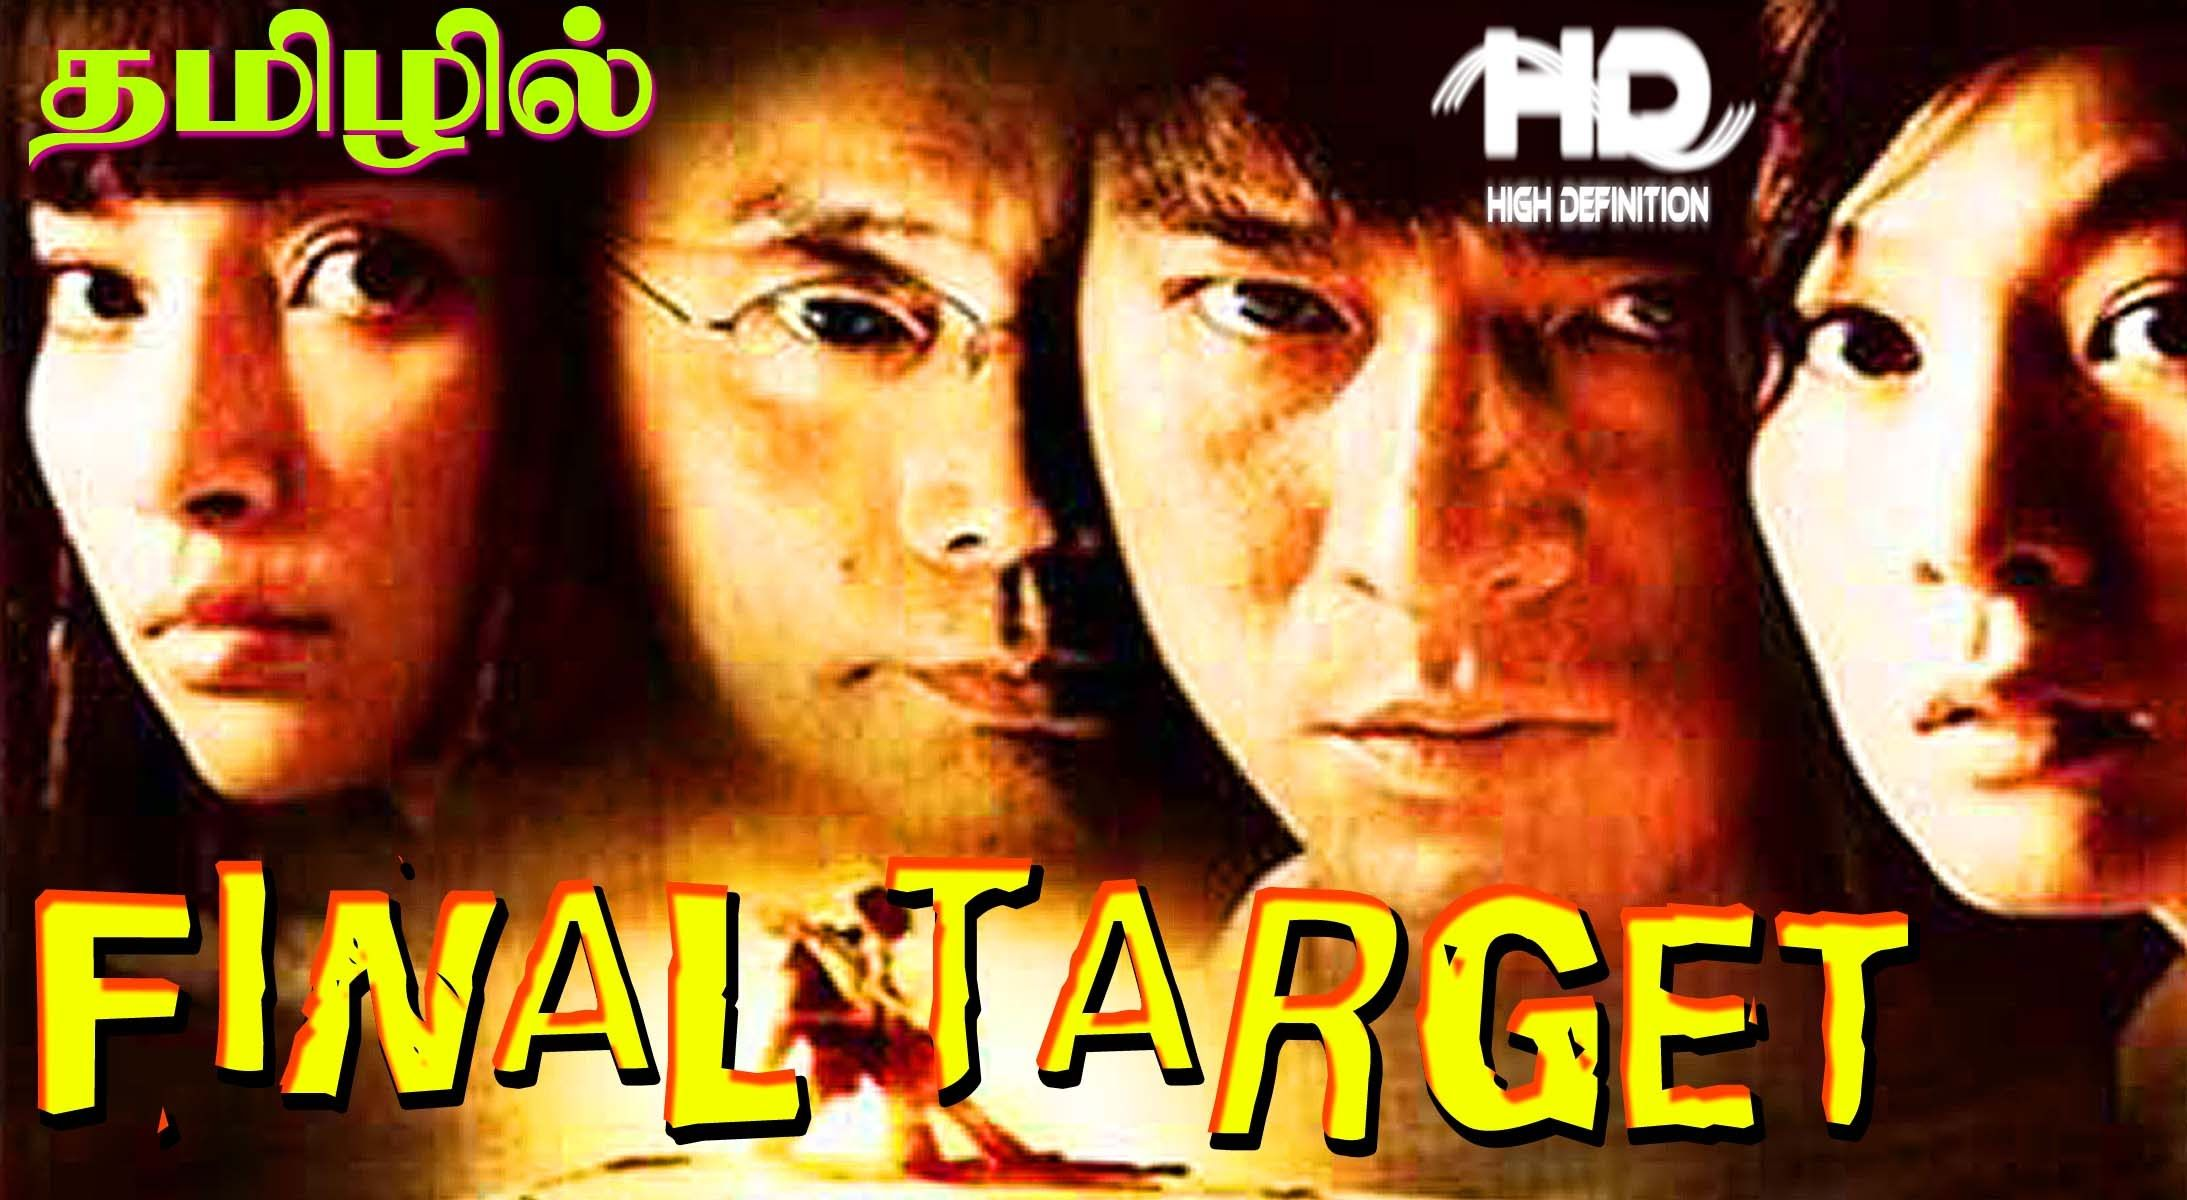 Tamil Dubbed English Action Movie Full Hd Fathal Target Hollywood Act Hollywood Action Movies Action Movies Today Episode